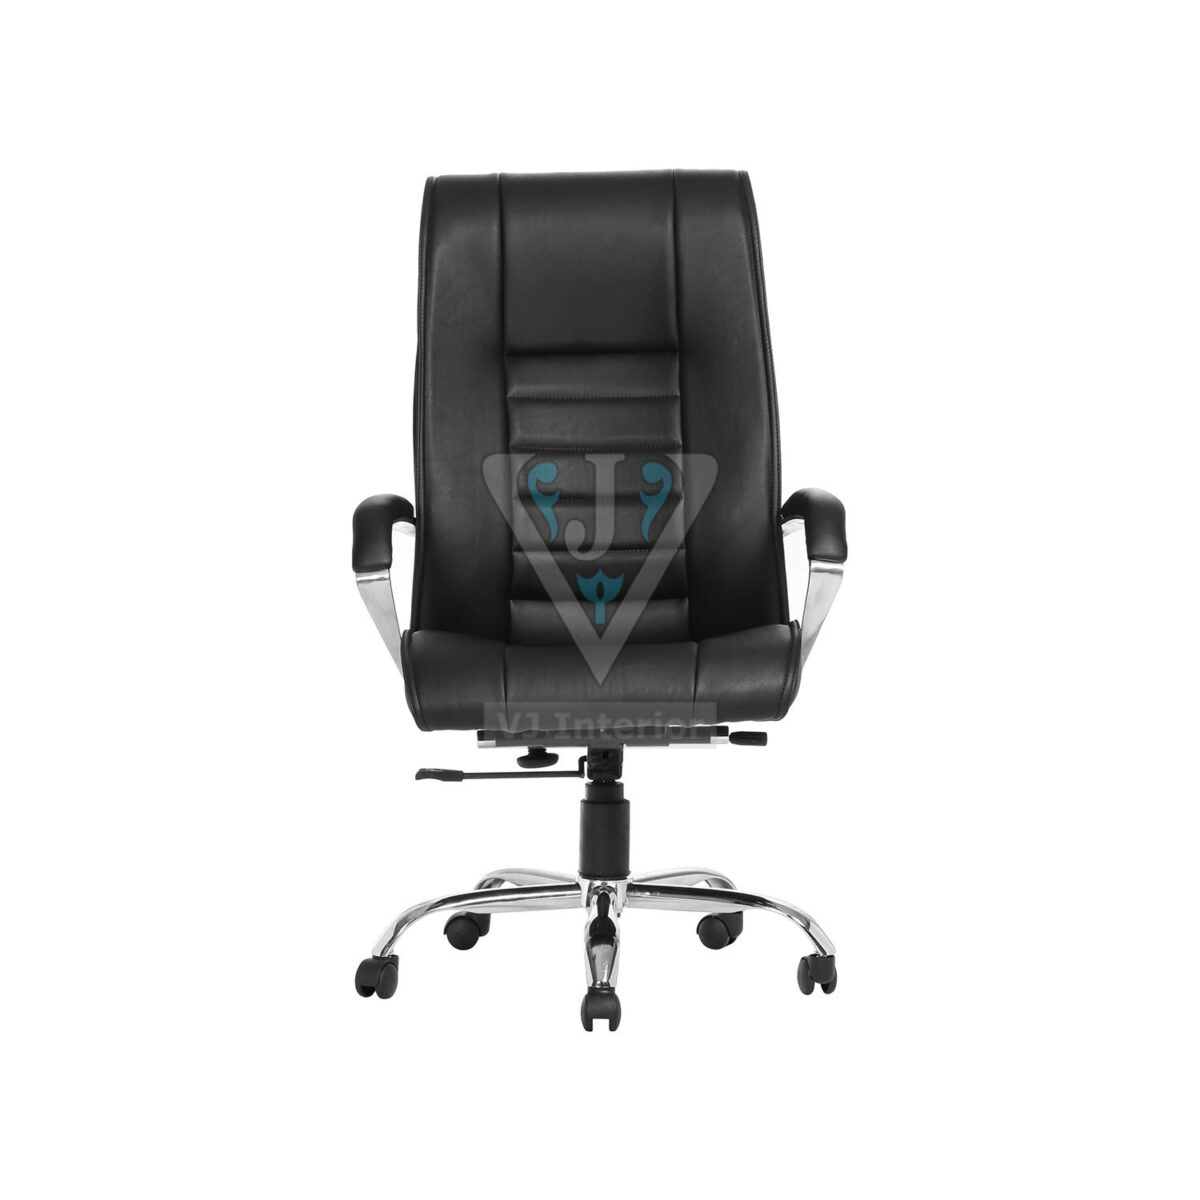 THE MANADA HB EXECUTIVE CHAIR BLACK